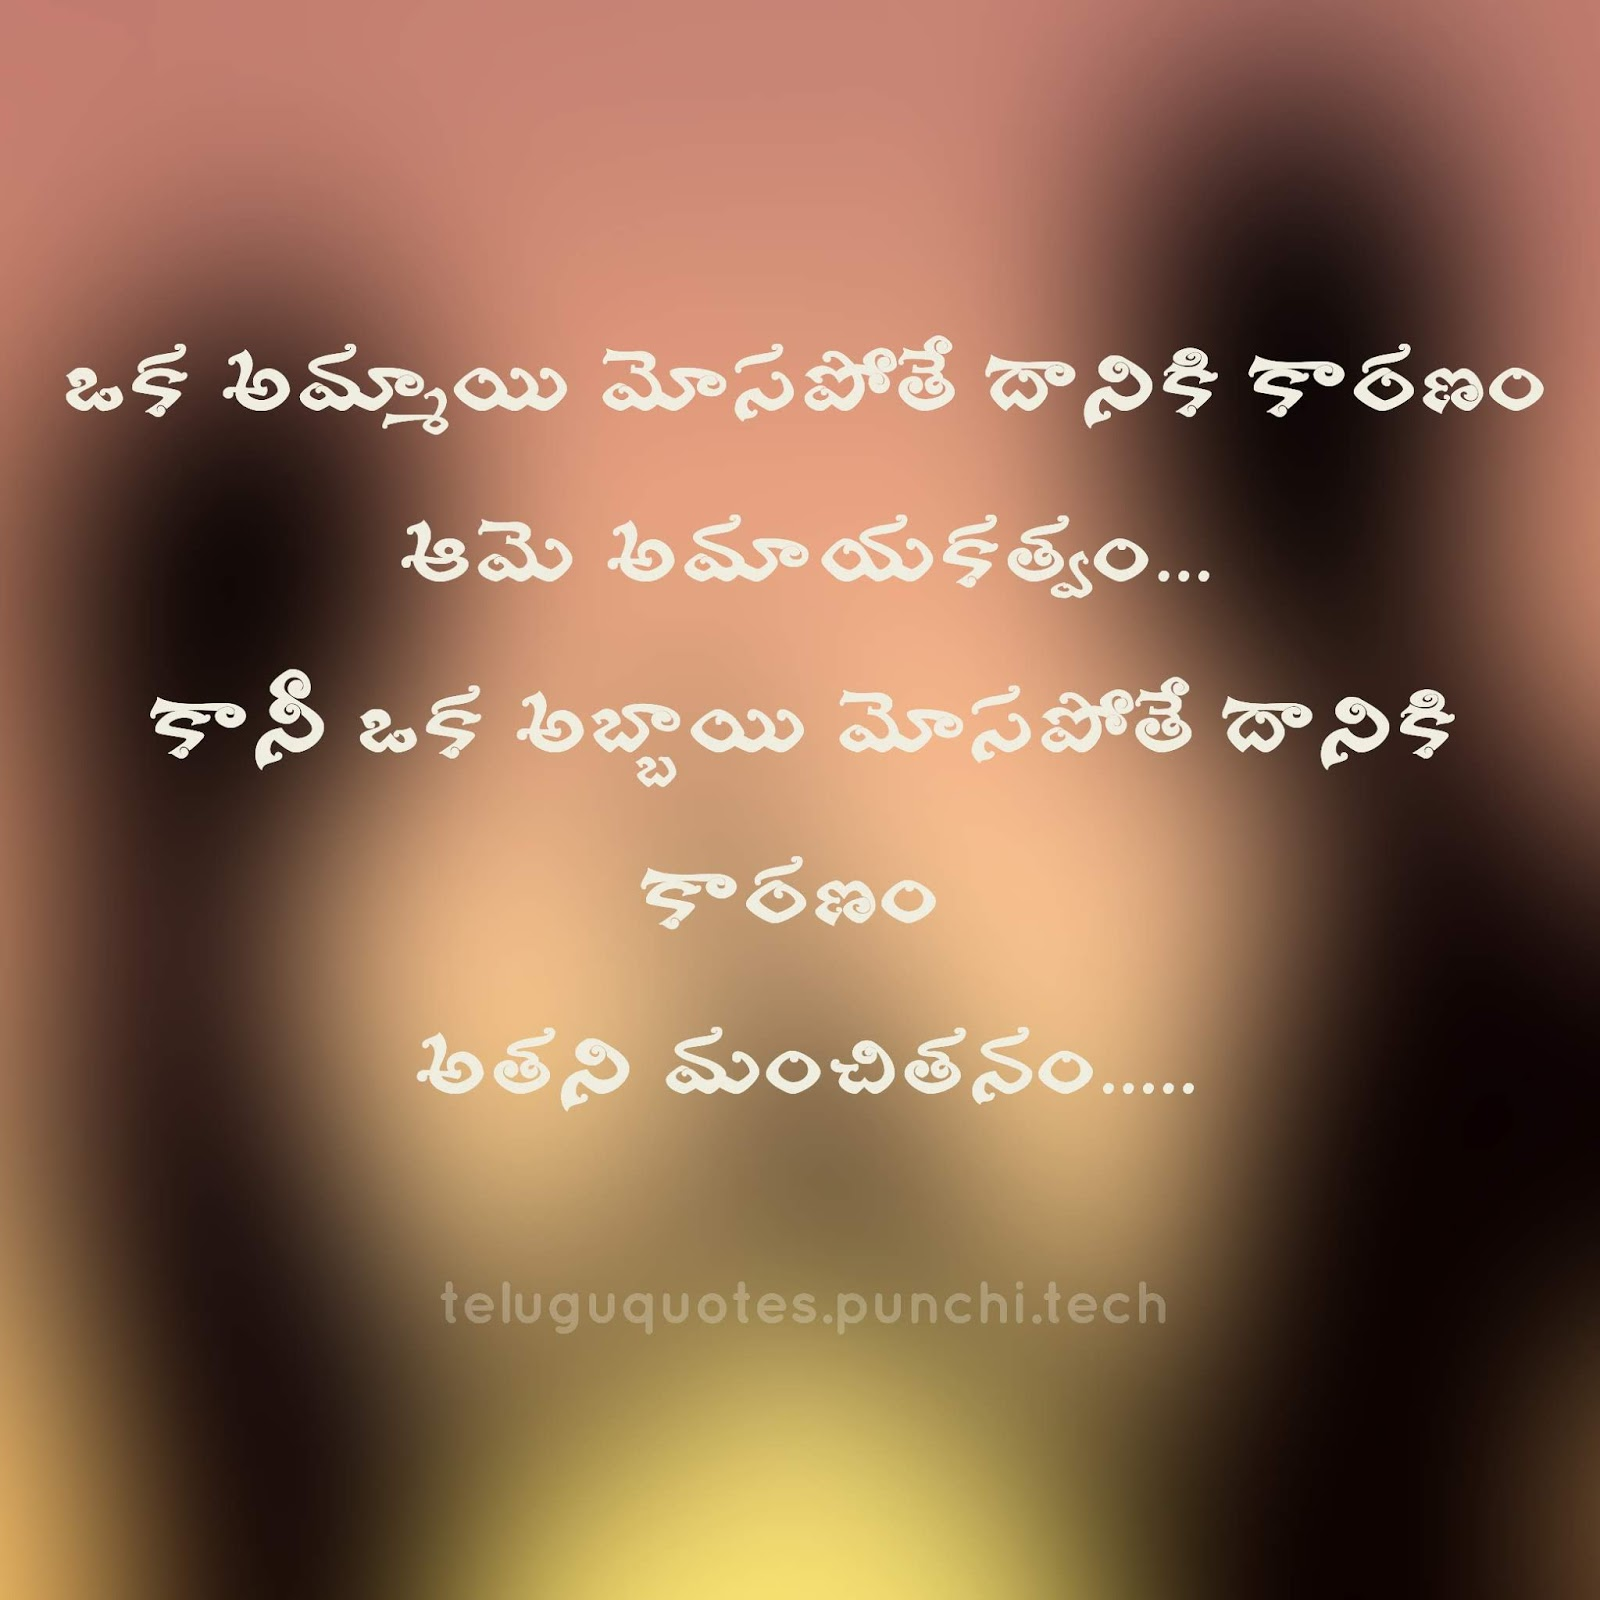 Telugu Love Quotes,love quotes images for mobile,telugu love quotes images for whatsapp